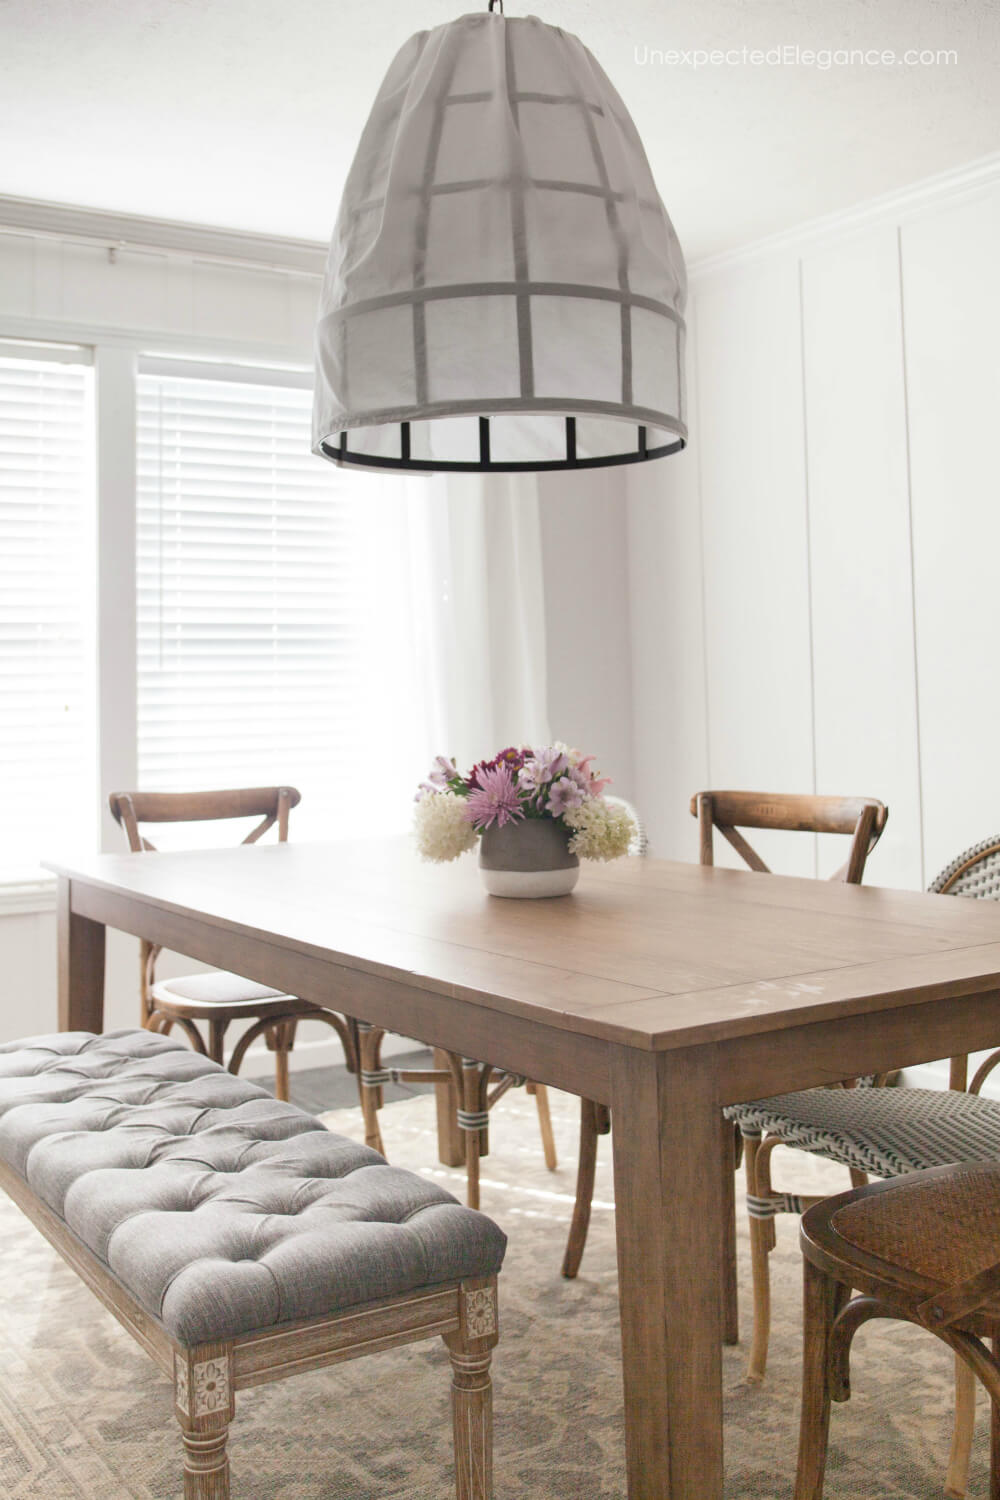 Check out this simple and casual dining room transformation!